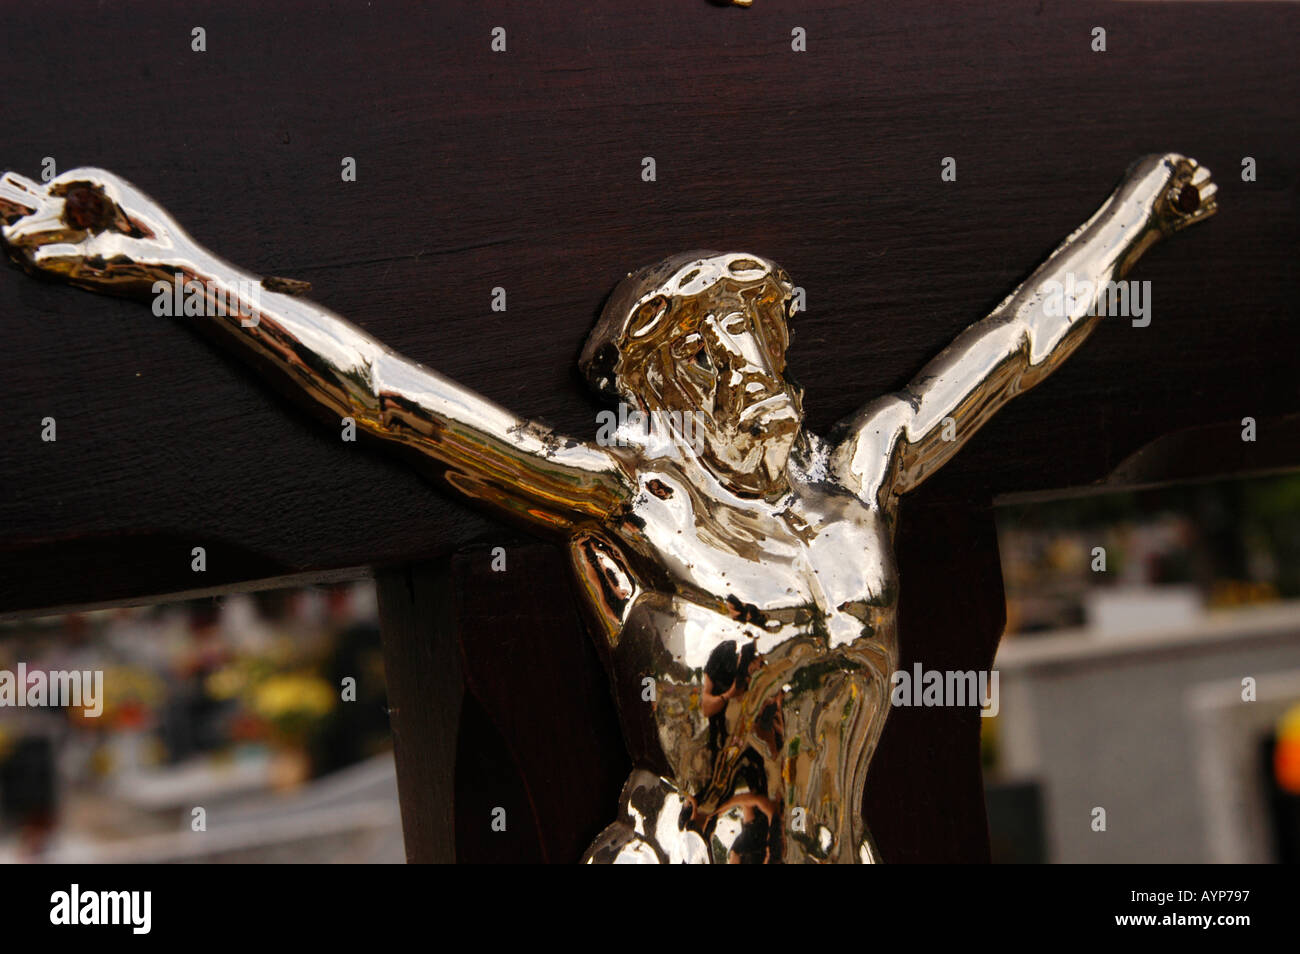 silver metal statue of jesus christ crucified on dark wooden cross